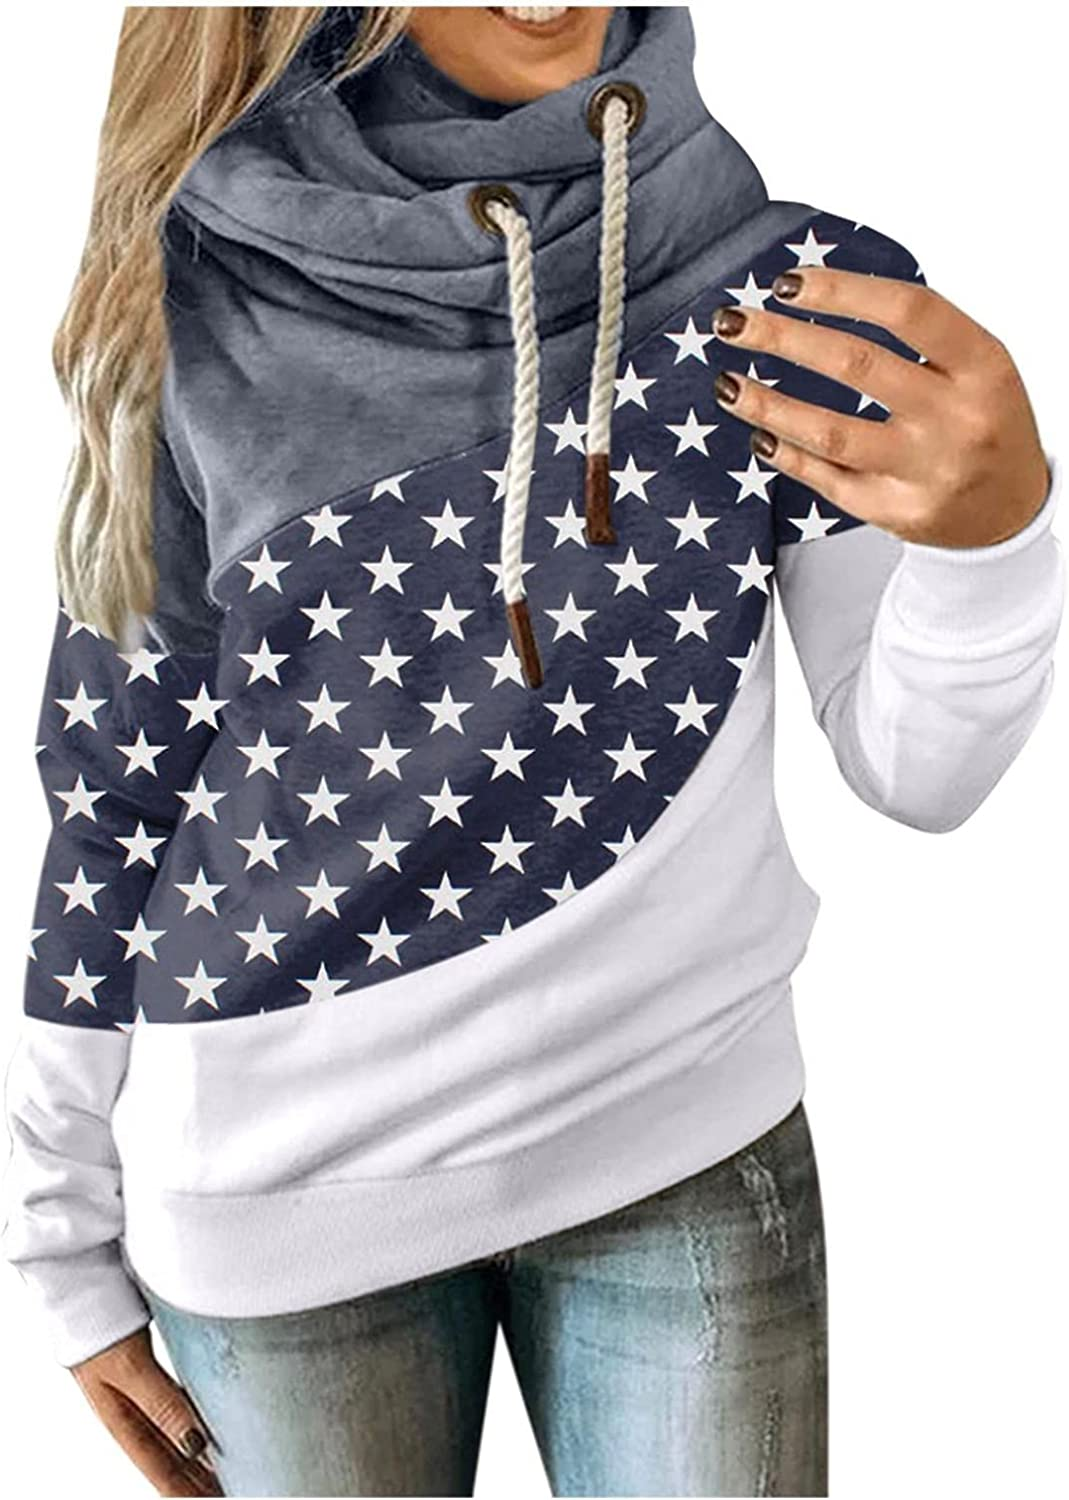 UOCUFY Hoodies for Women,Casual Drawstring Pullover Long Sleeve Dot Printed Hoodies Cowl Neck Lightweight Sweatshirts